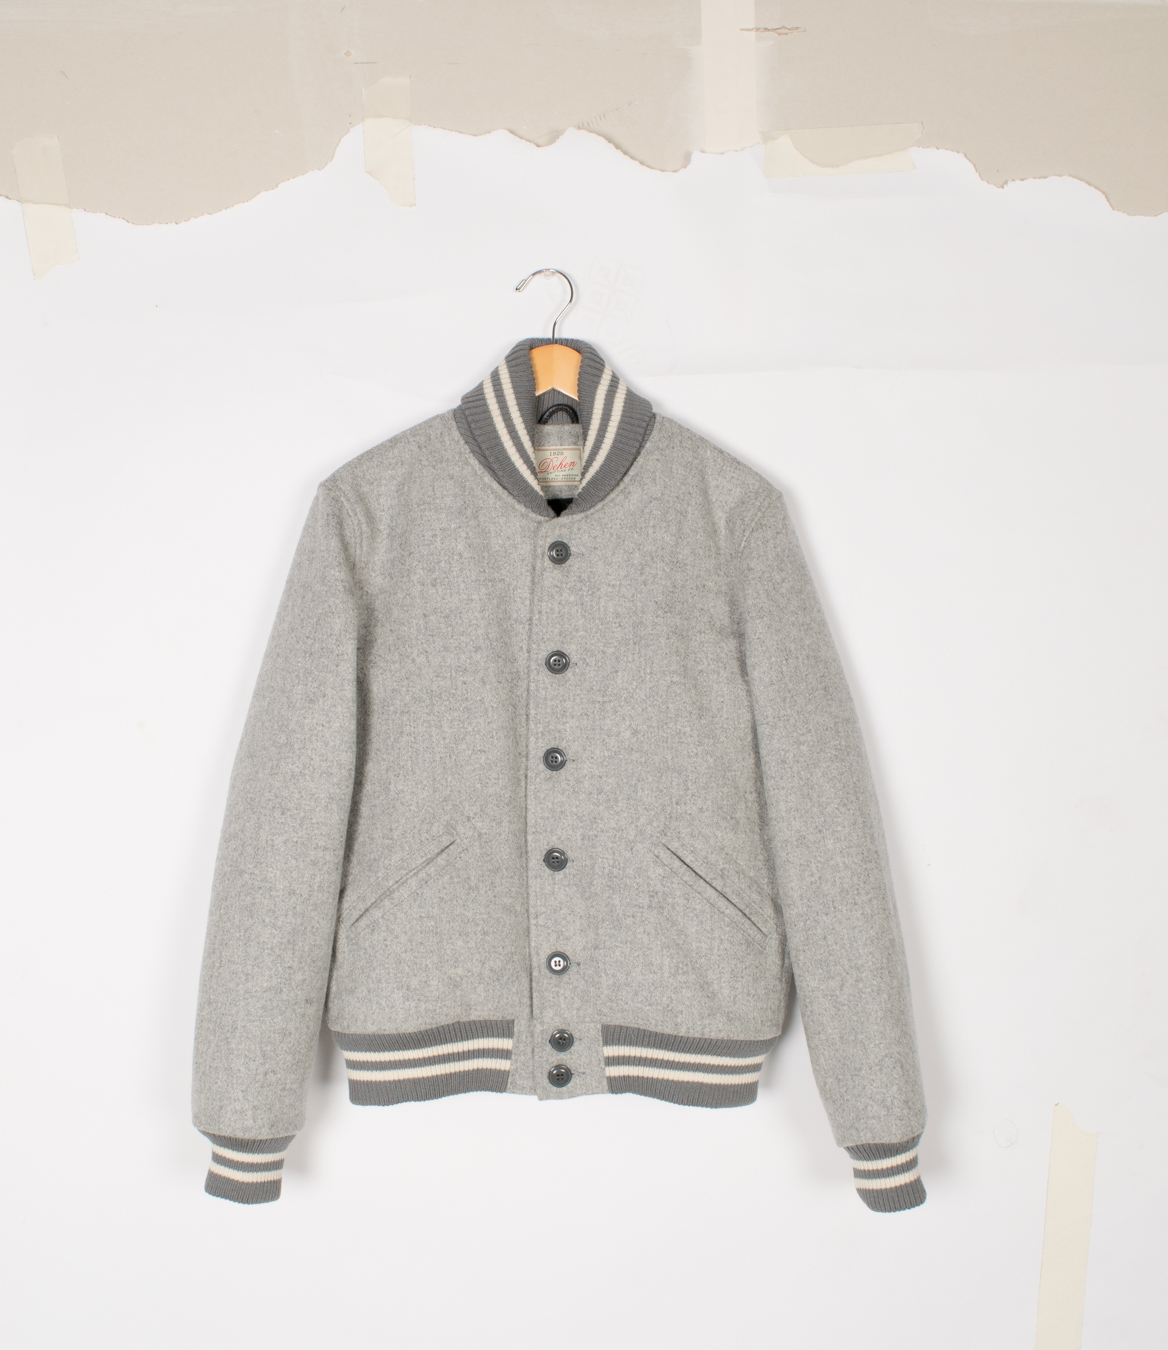 Club Jacket - Oxford Grey - $475